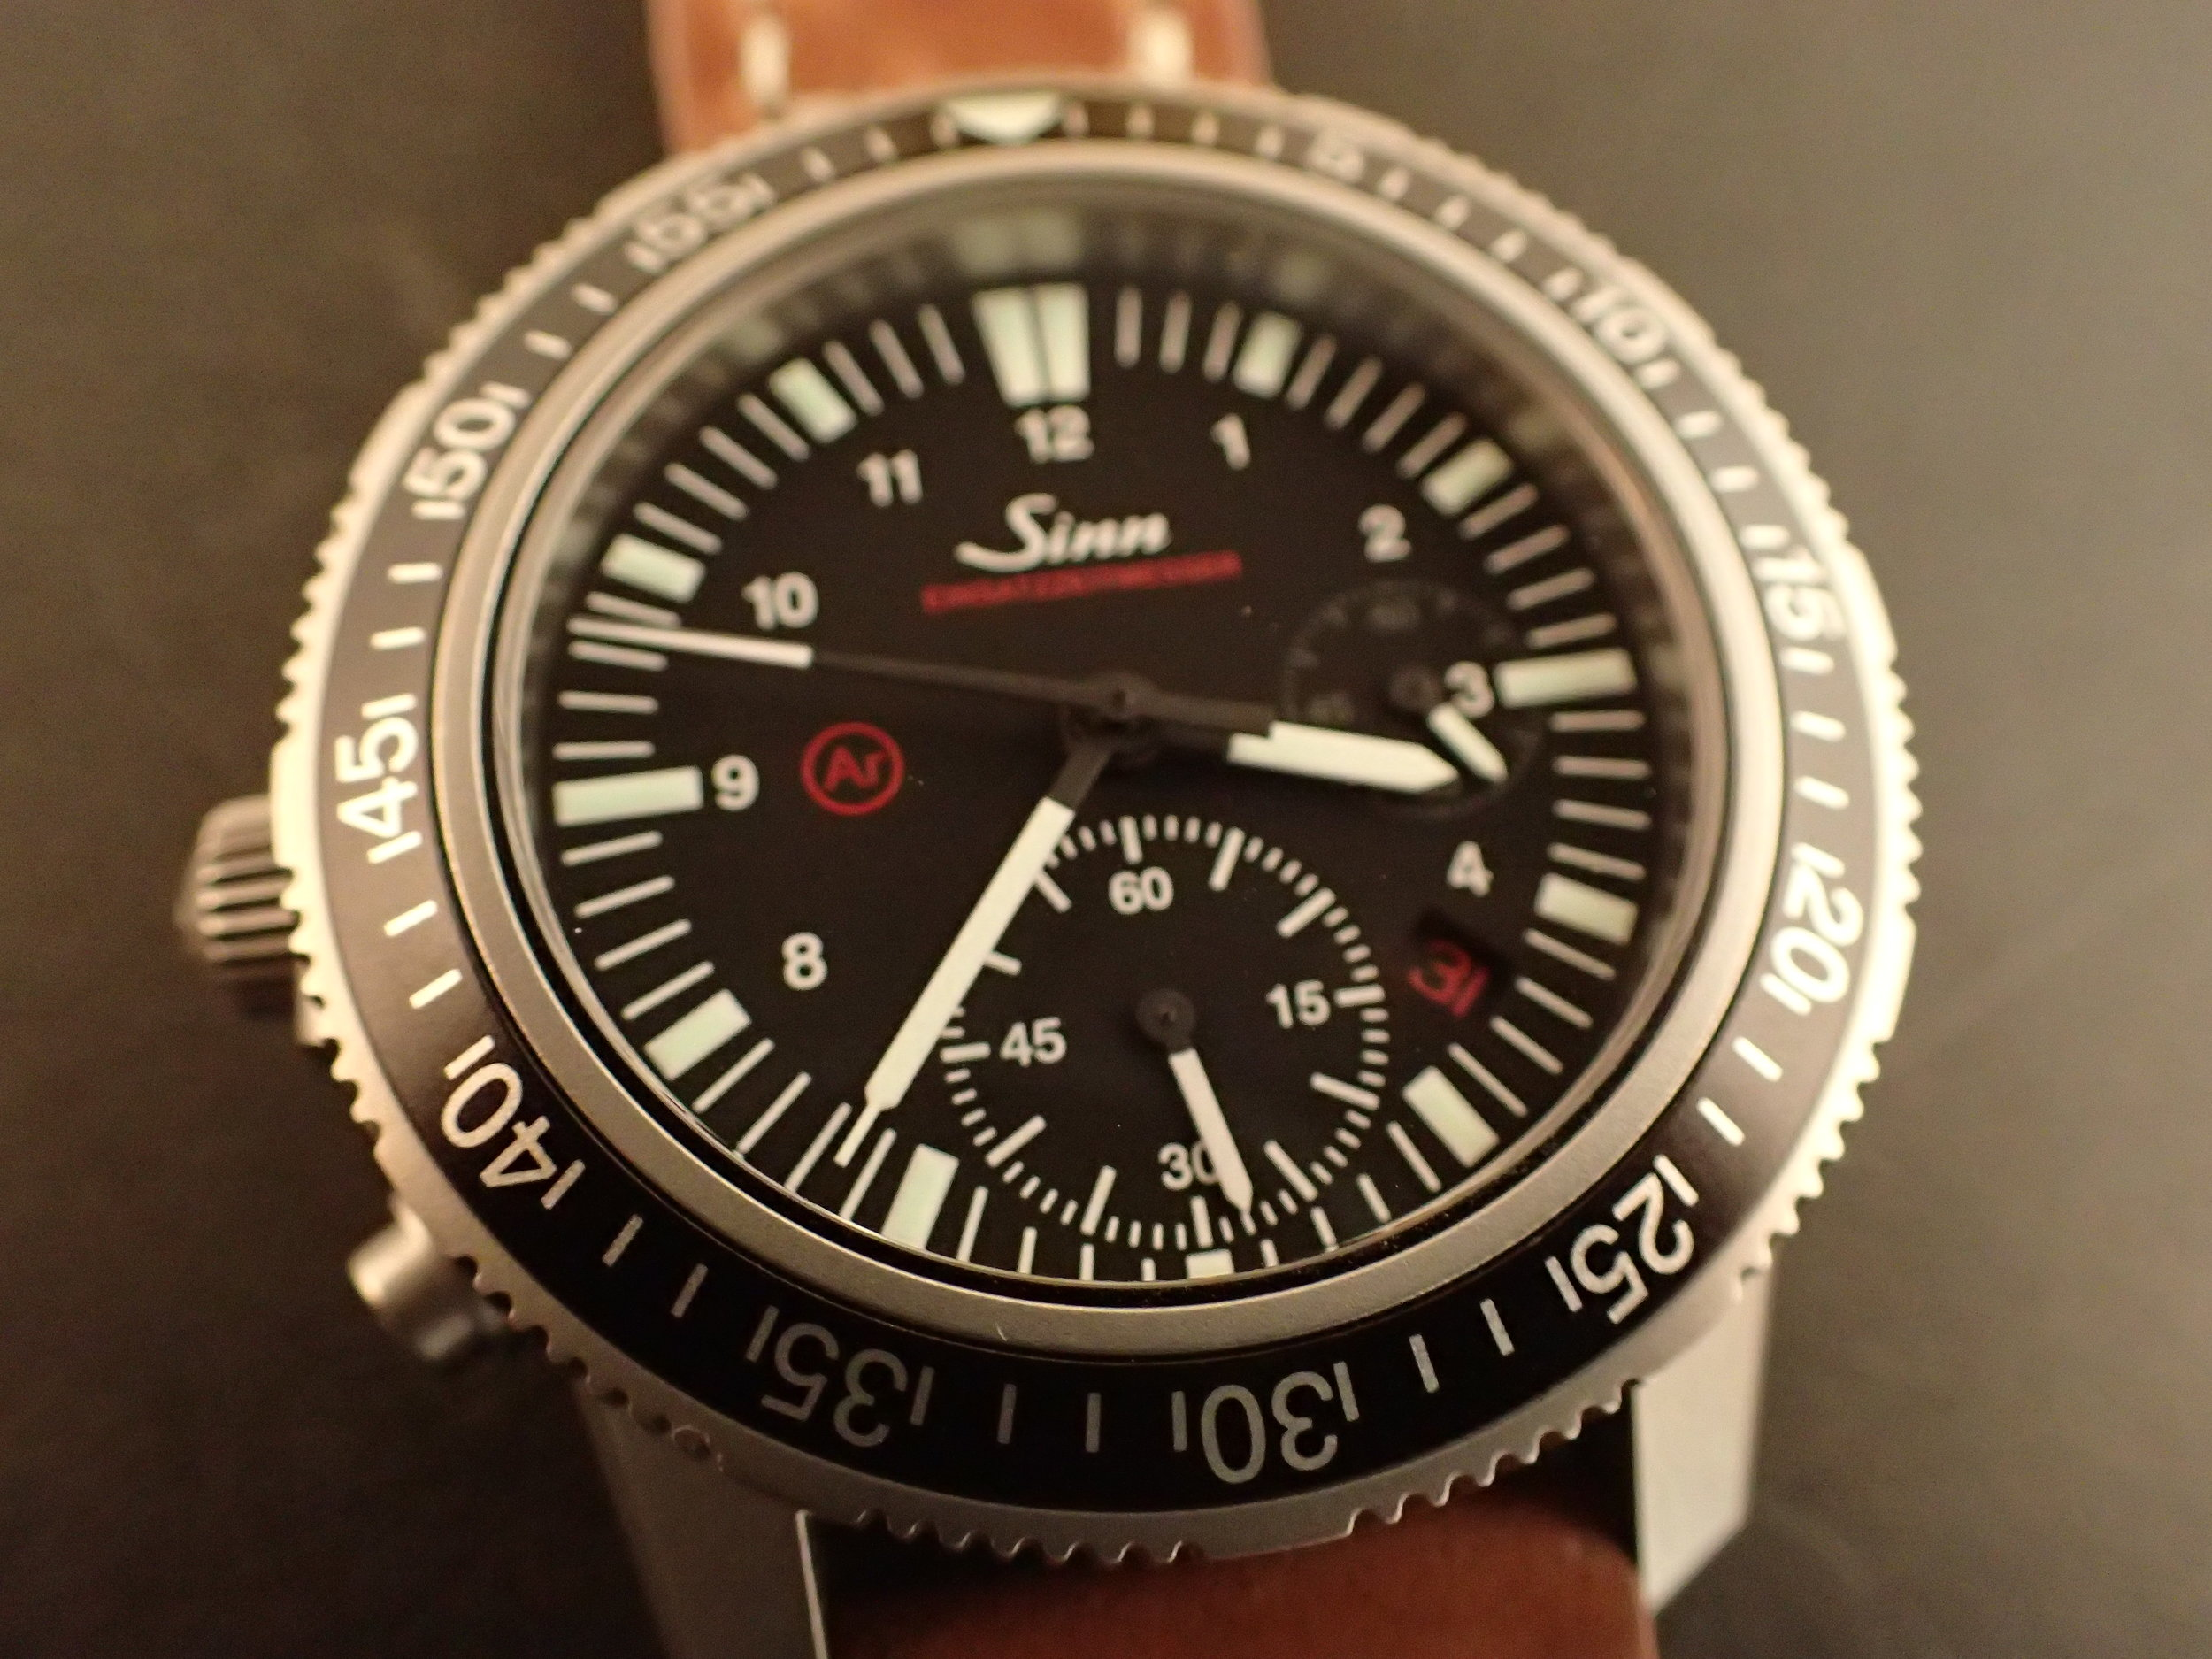 A defining and unusual characteristic of the Sinn 613 is the 60-minute chronograph located at 6:00.